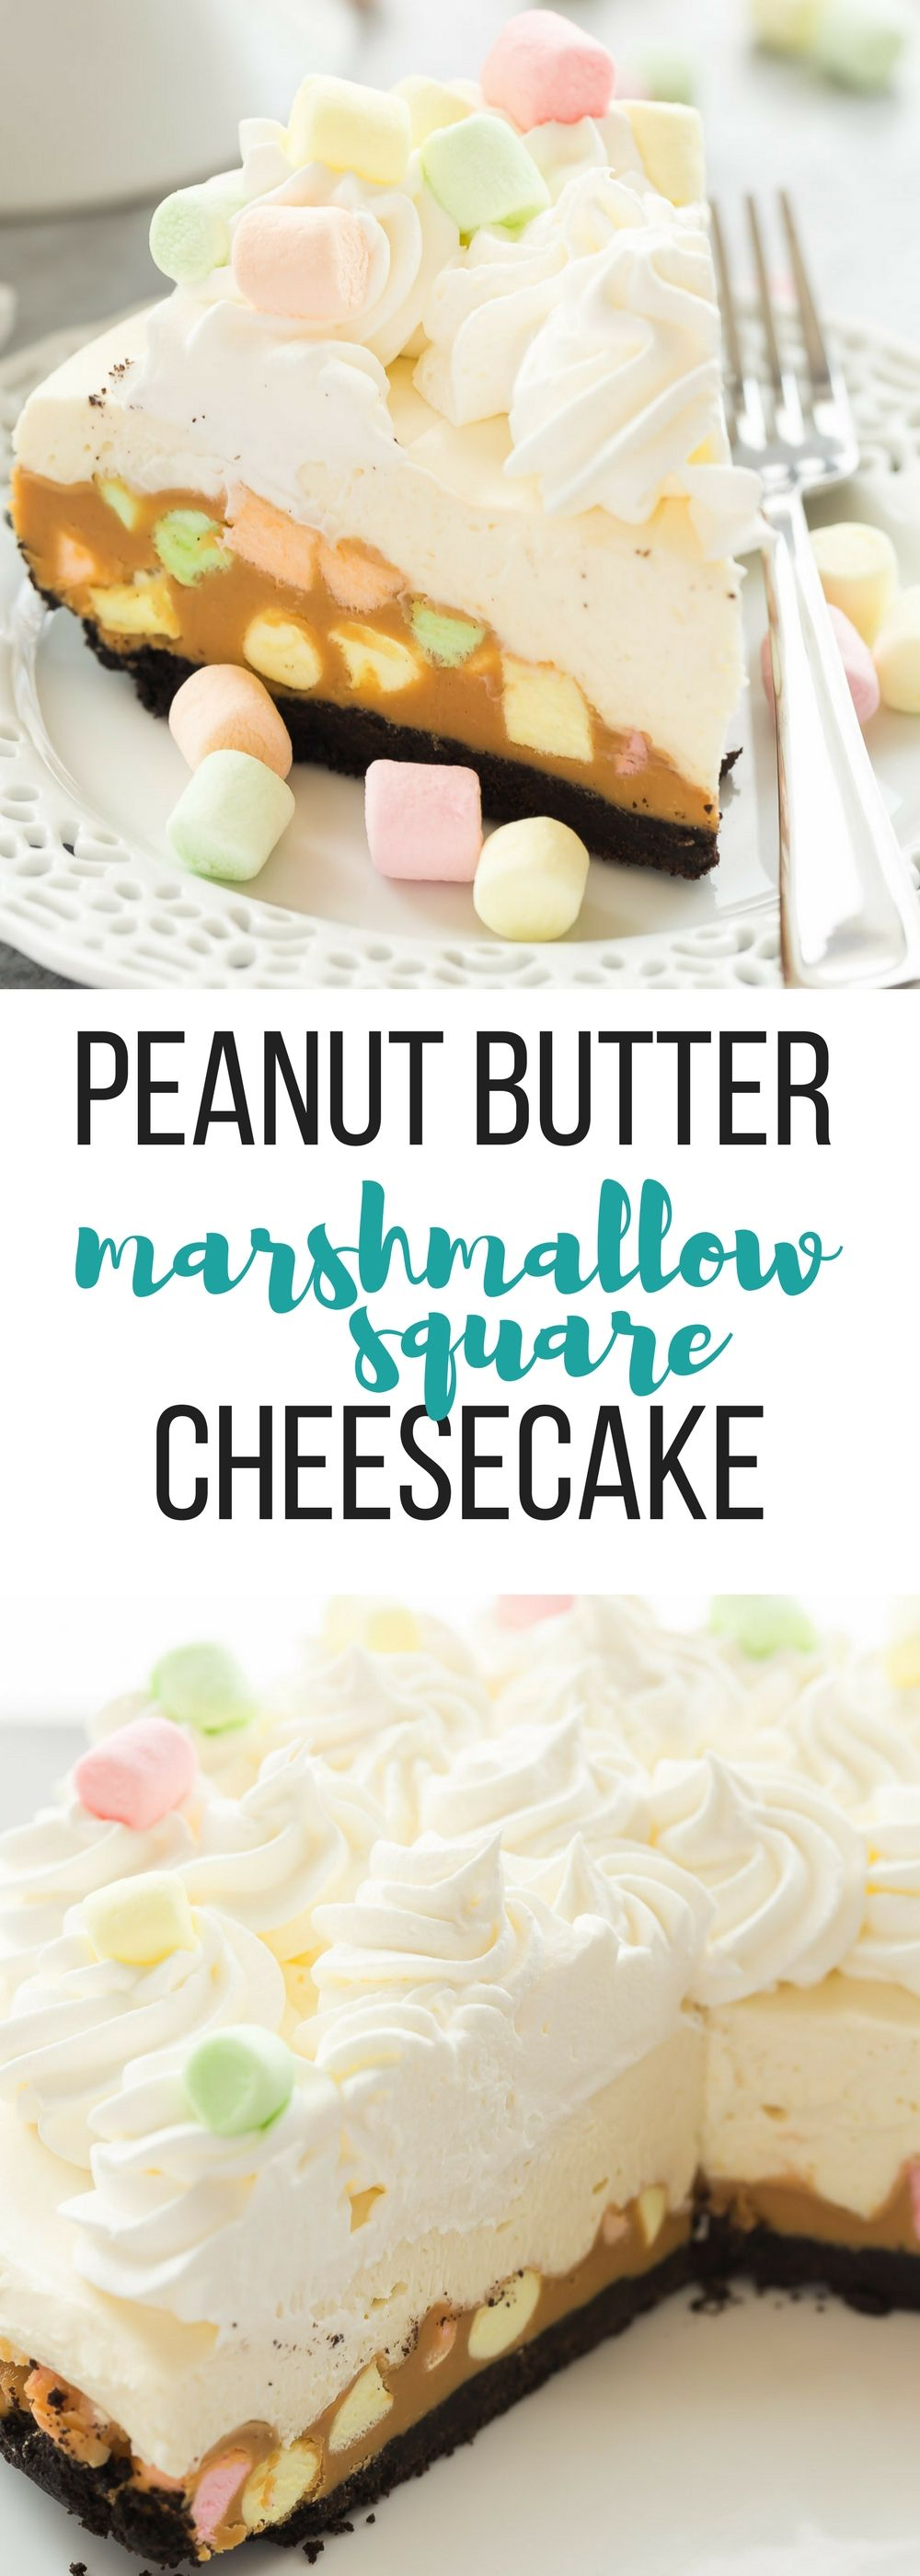 This No Bake Peanut Butter Marshmallow Square Cheesecake is a fun twist on a classic Christmas square! It's an easy dessert your guests will be raving over! Includes step by step recipe video. | no bake dessert | Christmas dessert | Christmas candy | Christmas baking | butterscotch | cream cheese | no bake cheesecake #cheesecake #christmas #baking #marshmallow #dessert #confettisquares